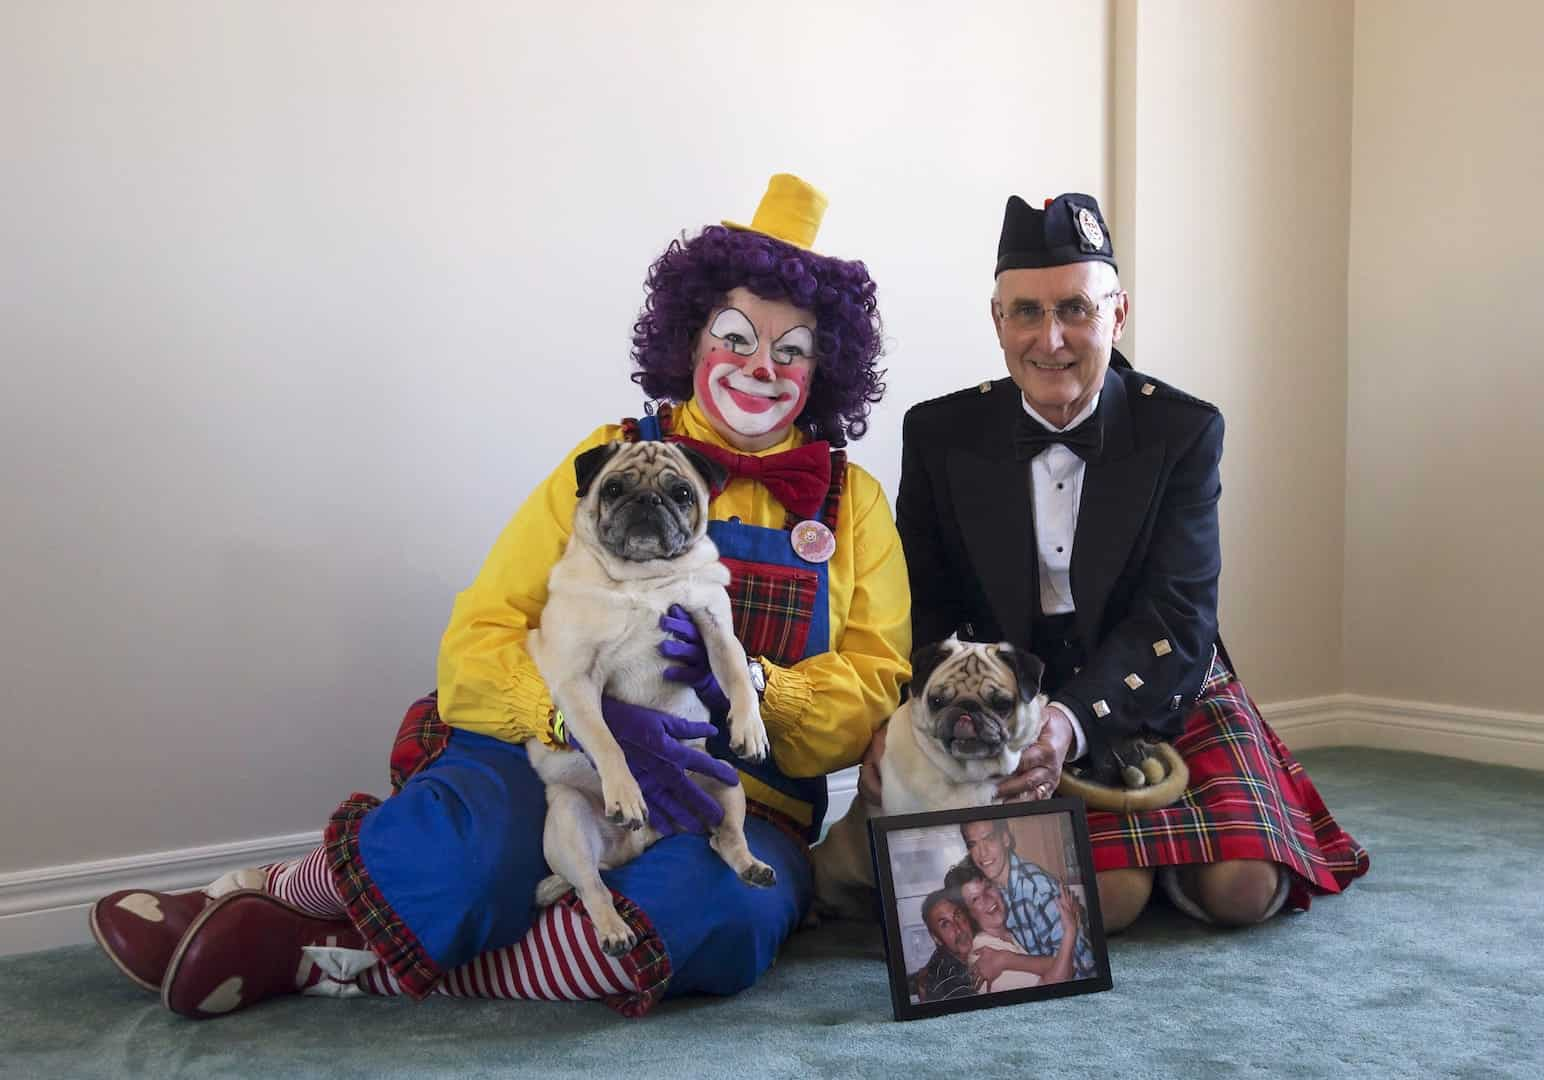 The woman dressed as a clown in yellow shirt and blue overalls, and the man in the scottish suit consist of red skirt, black jacket and a hat, are sitting together on their knees on the floor , each holds a pug-dog; a picture of their family stays in front of them.